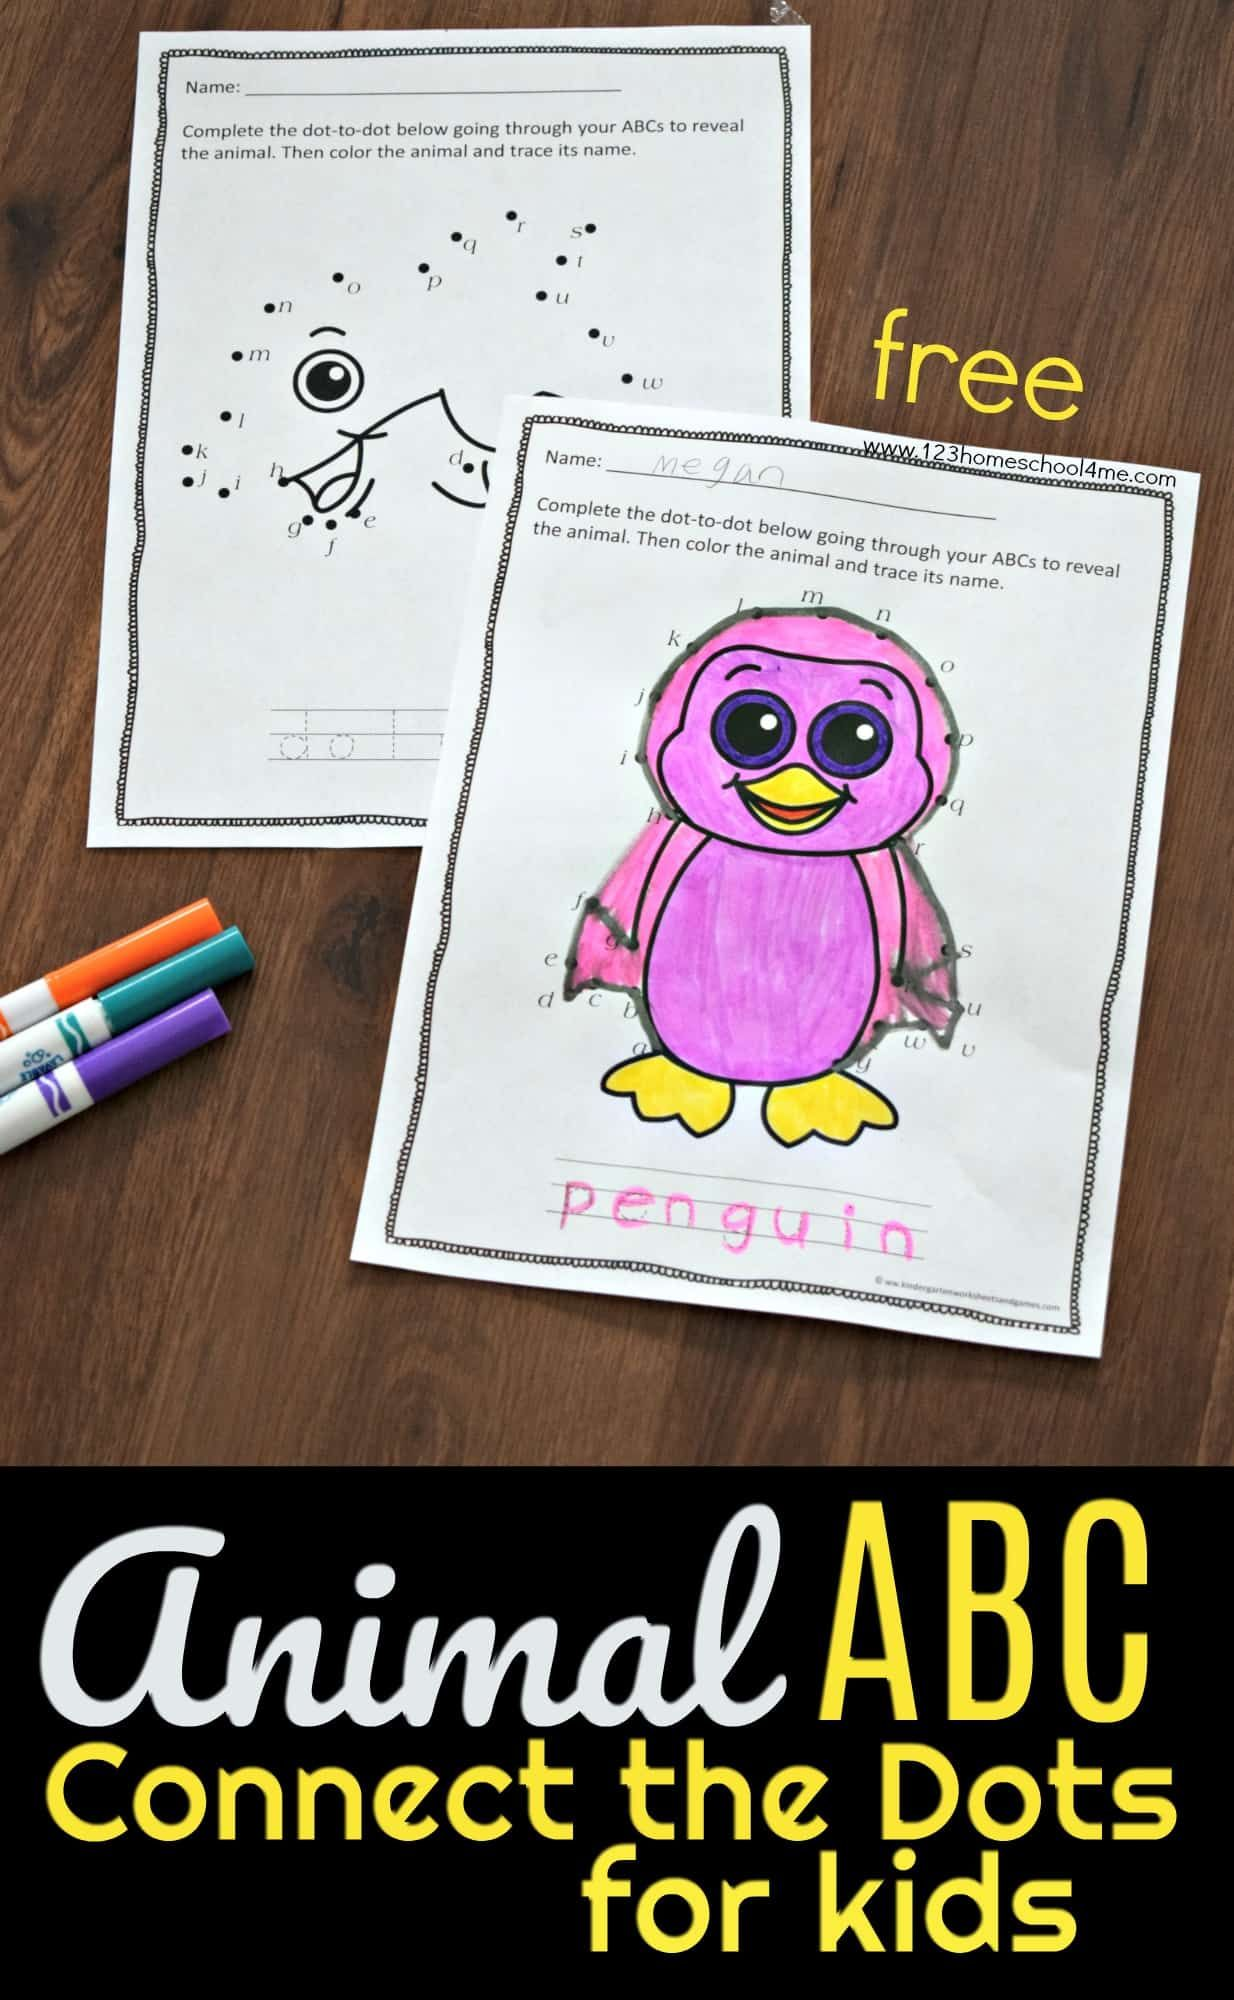 Free Animal Abc Connect The Dots For Kids